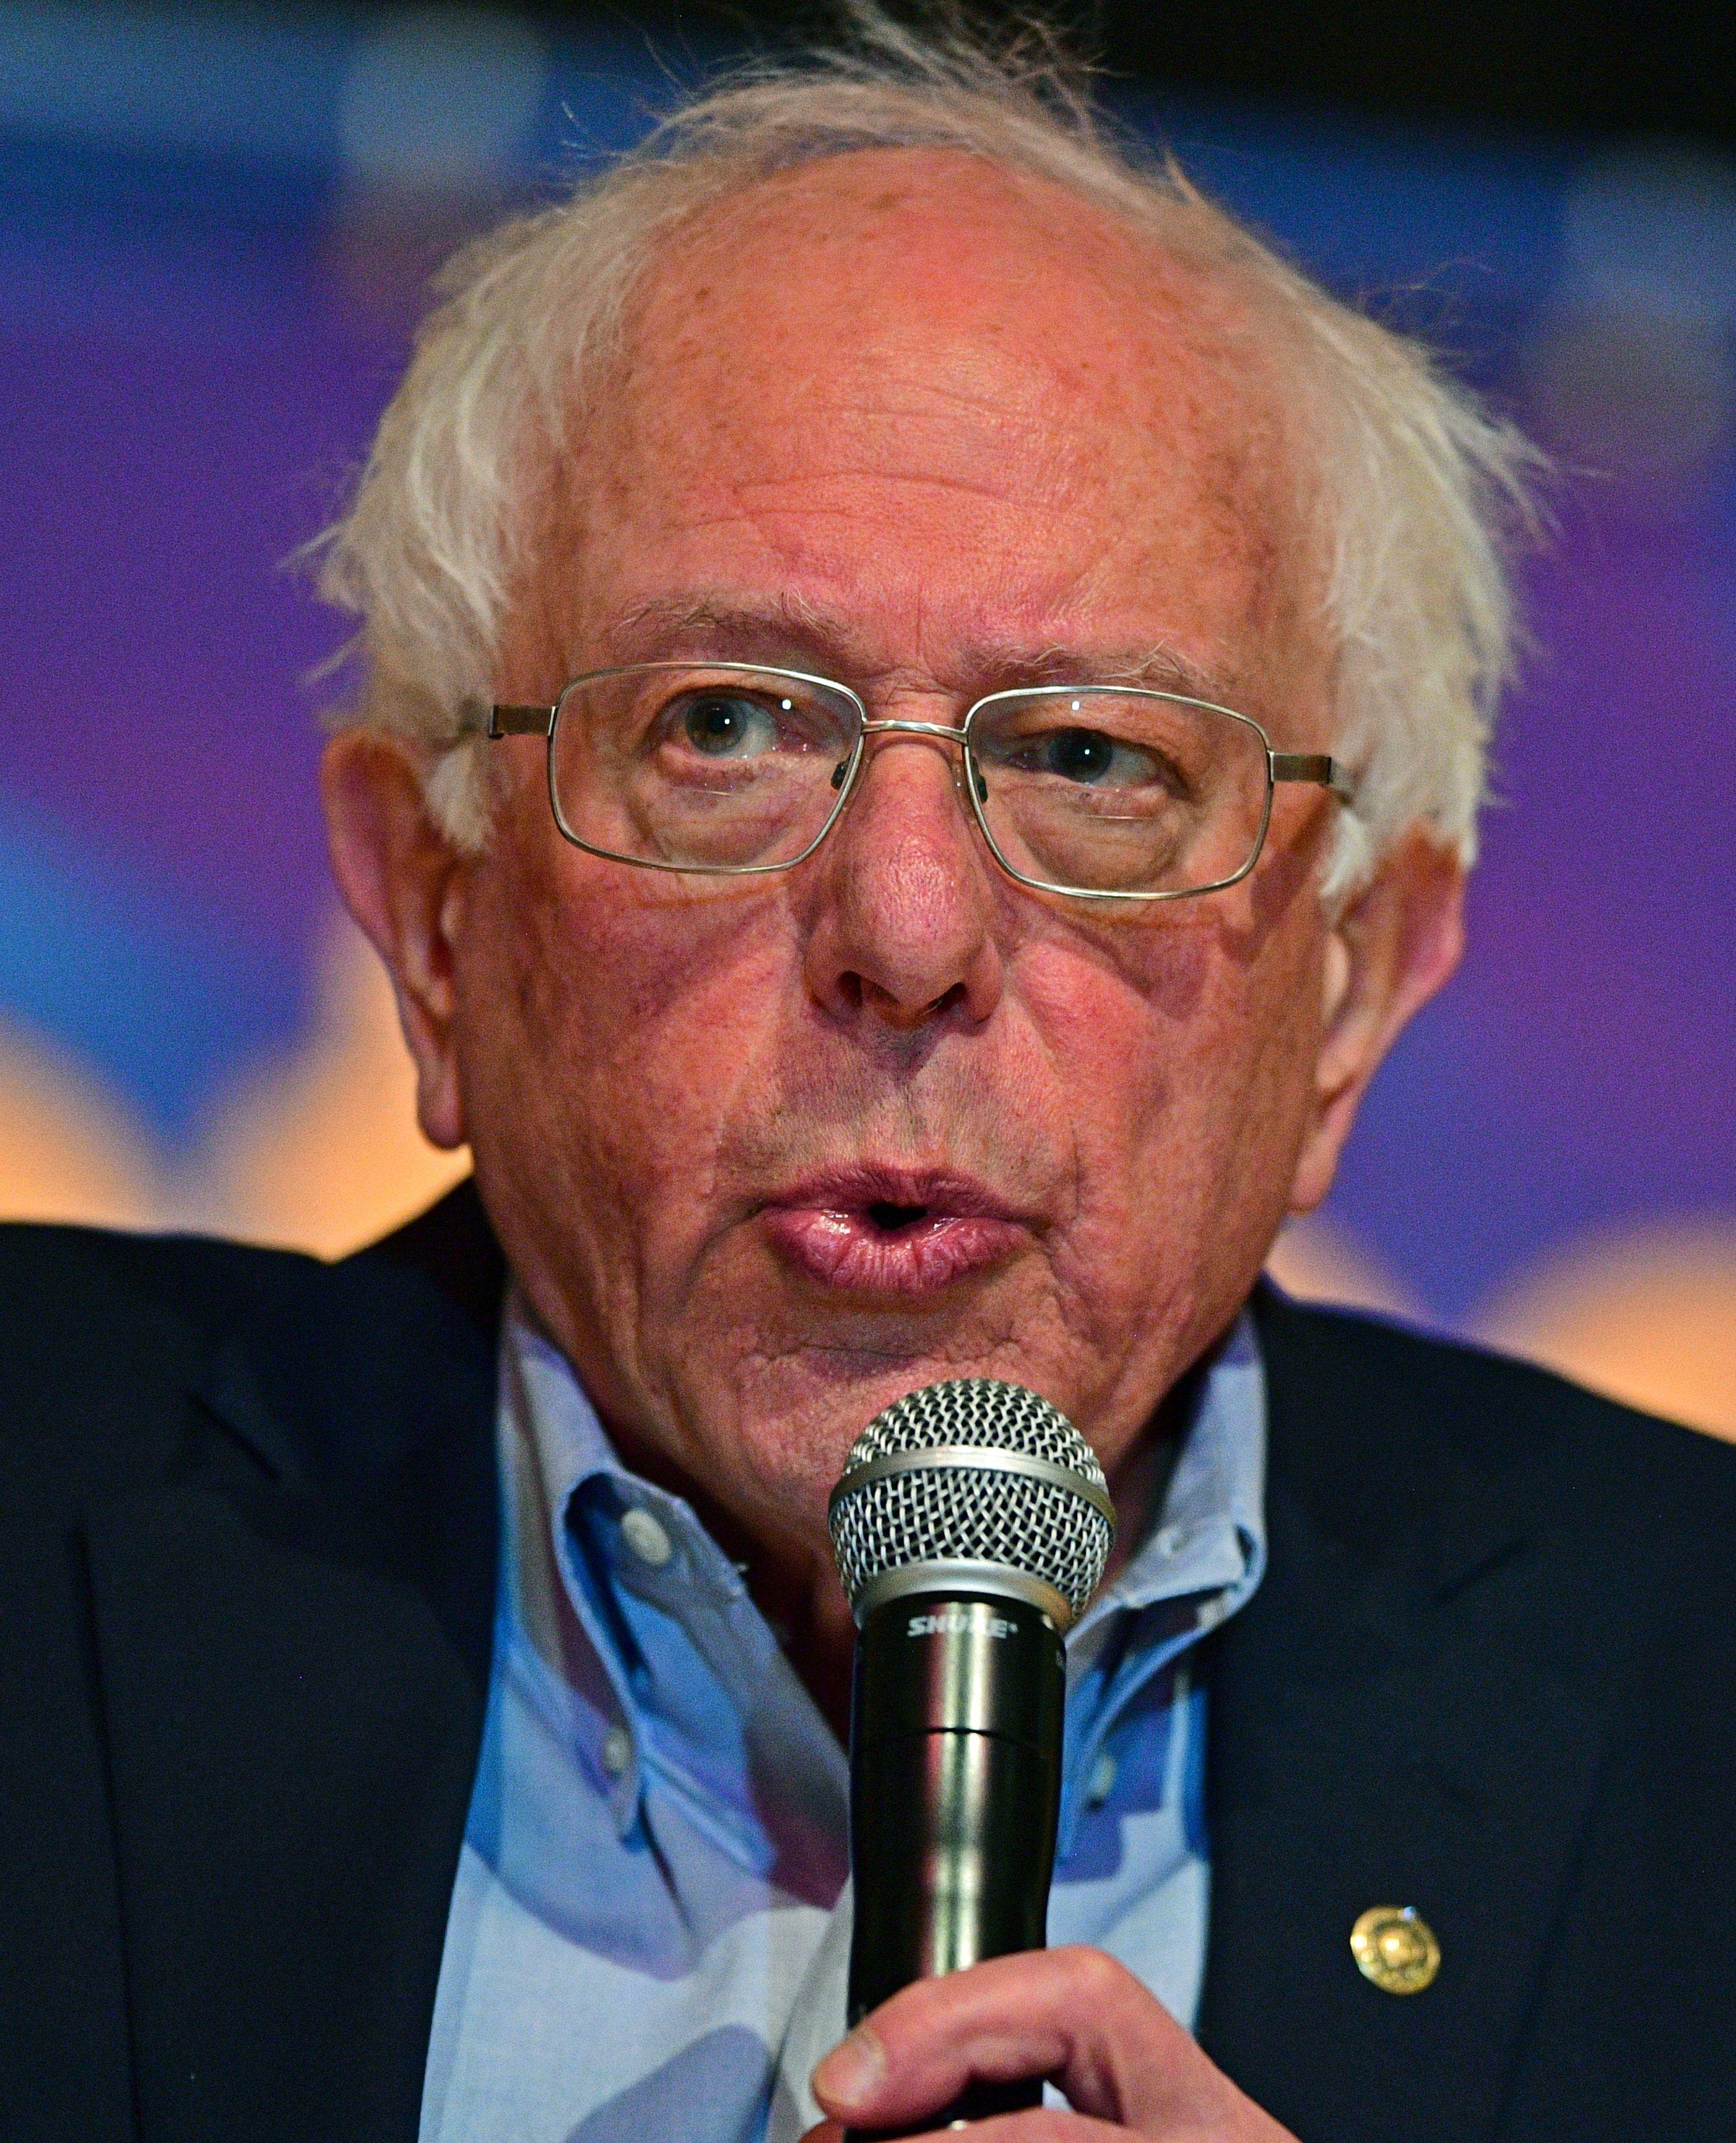 Bernie Sanders offered his stance at a CNN town hall Monday when asked whether he thought felons should be allowed to vote while they're incarcerated.